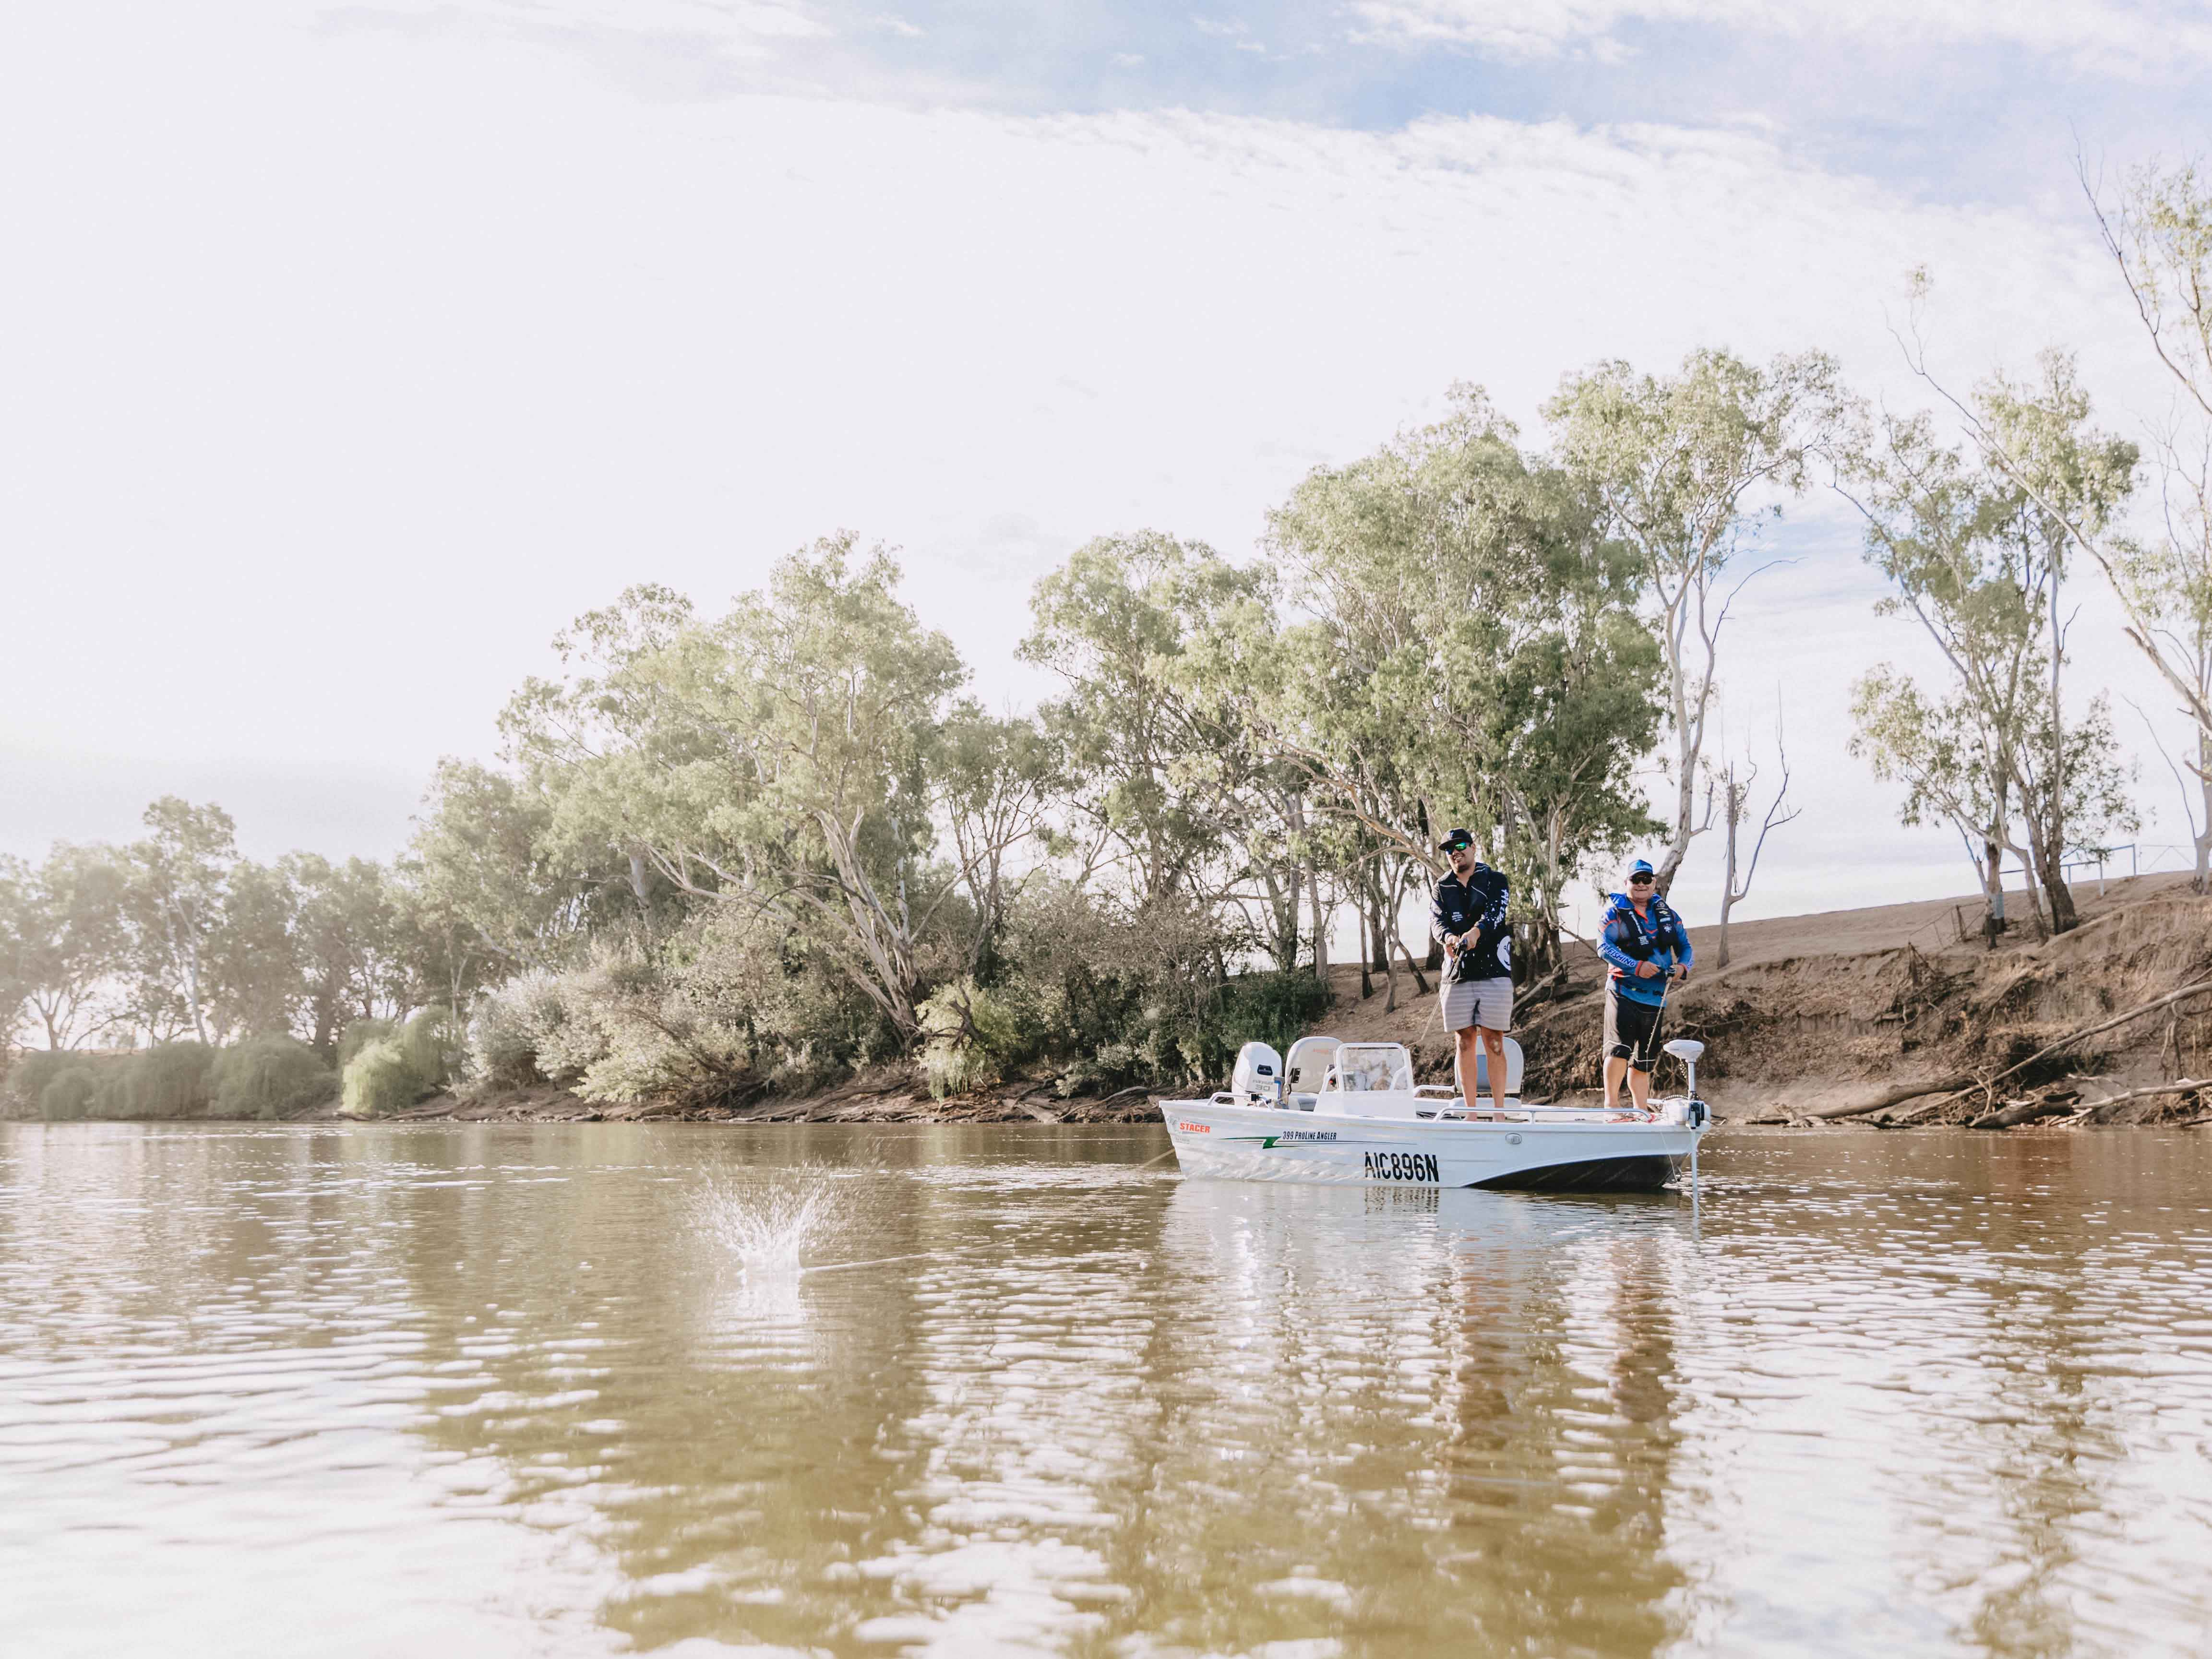 Boat on the Murrumbidgee River with two men casting a line into the water